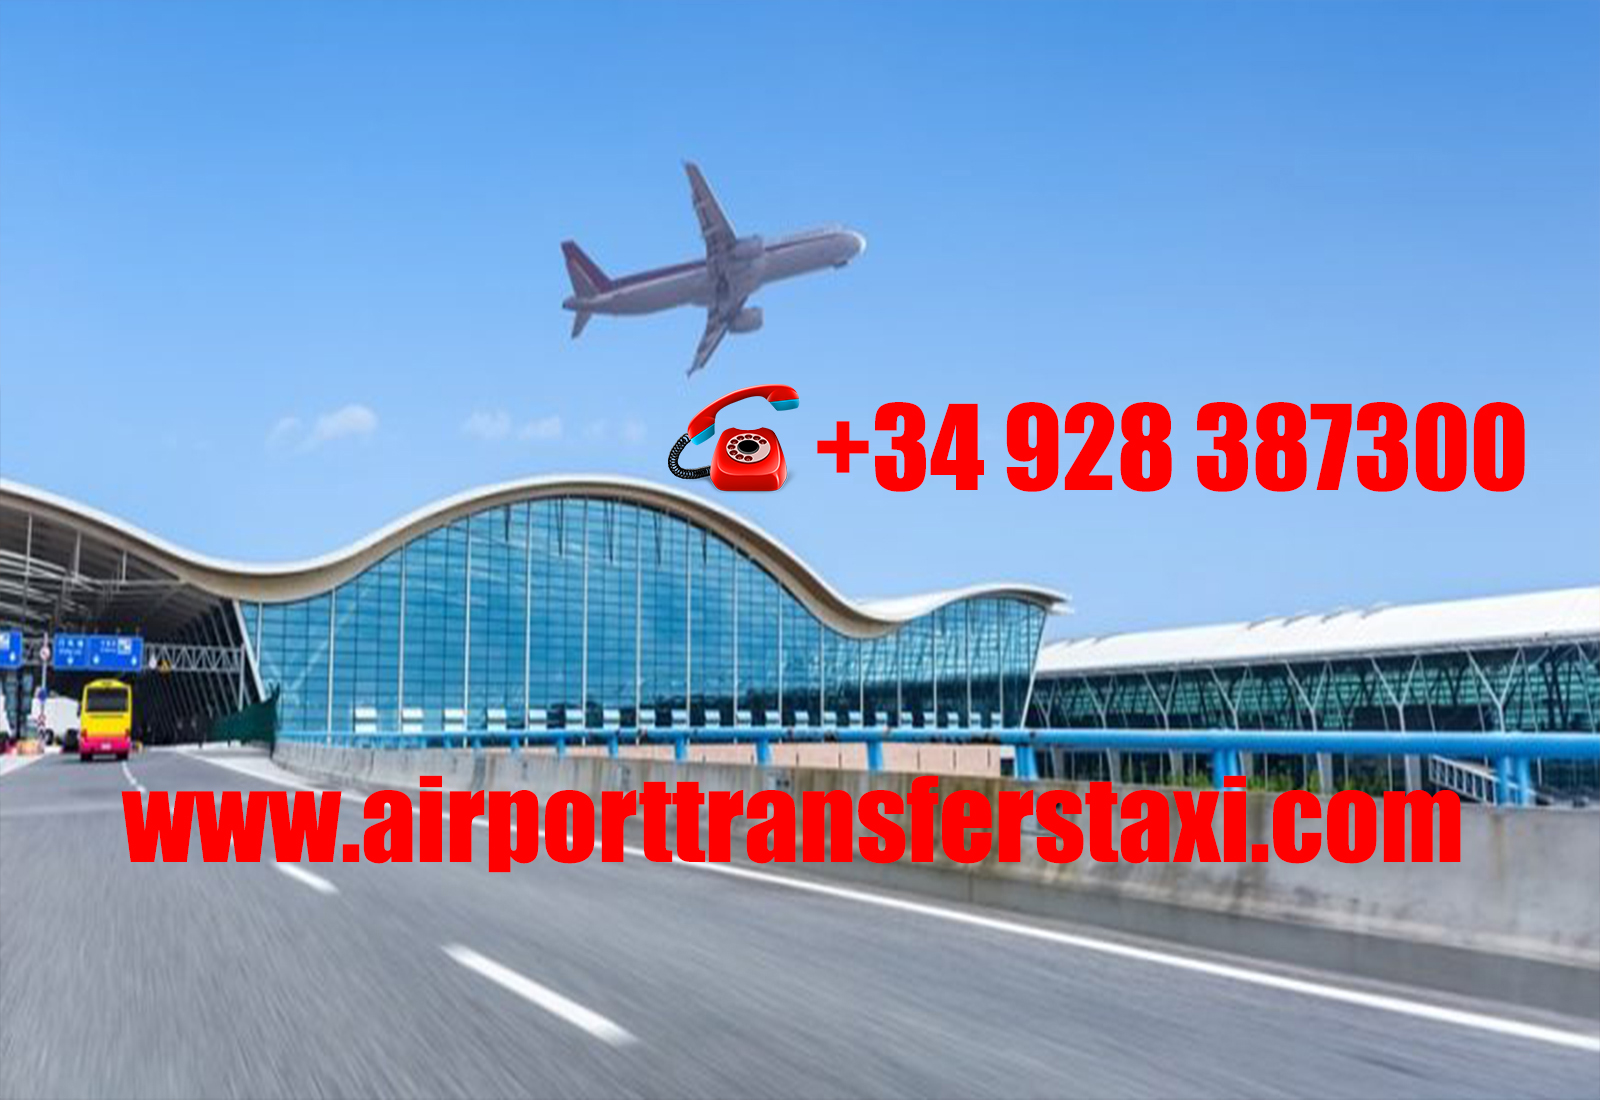 Low Cost Shuttle Canary Islands